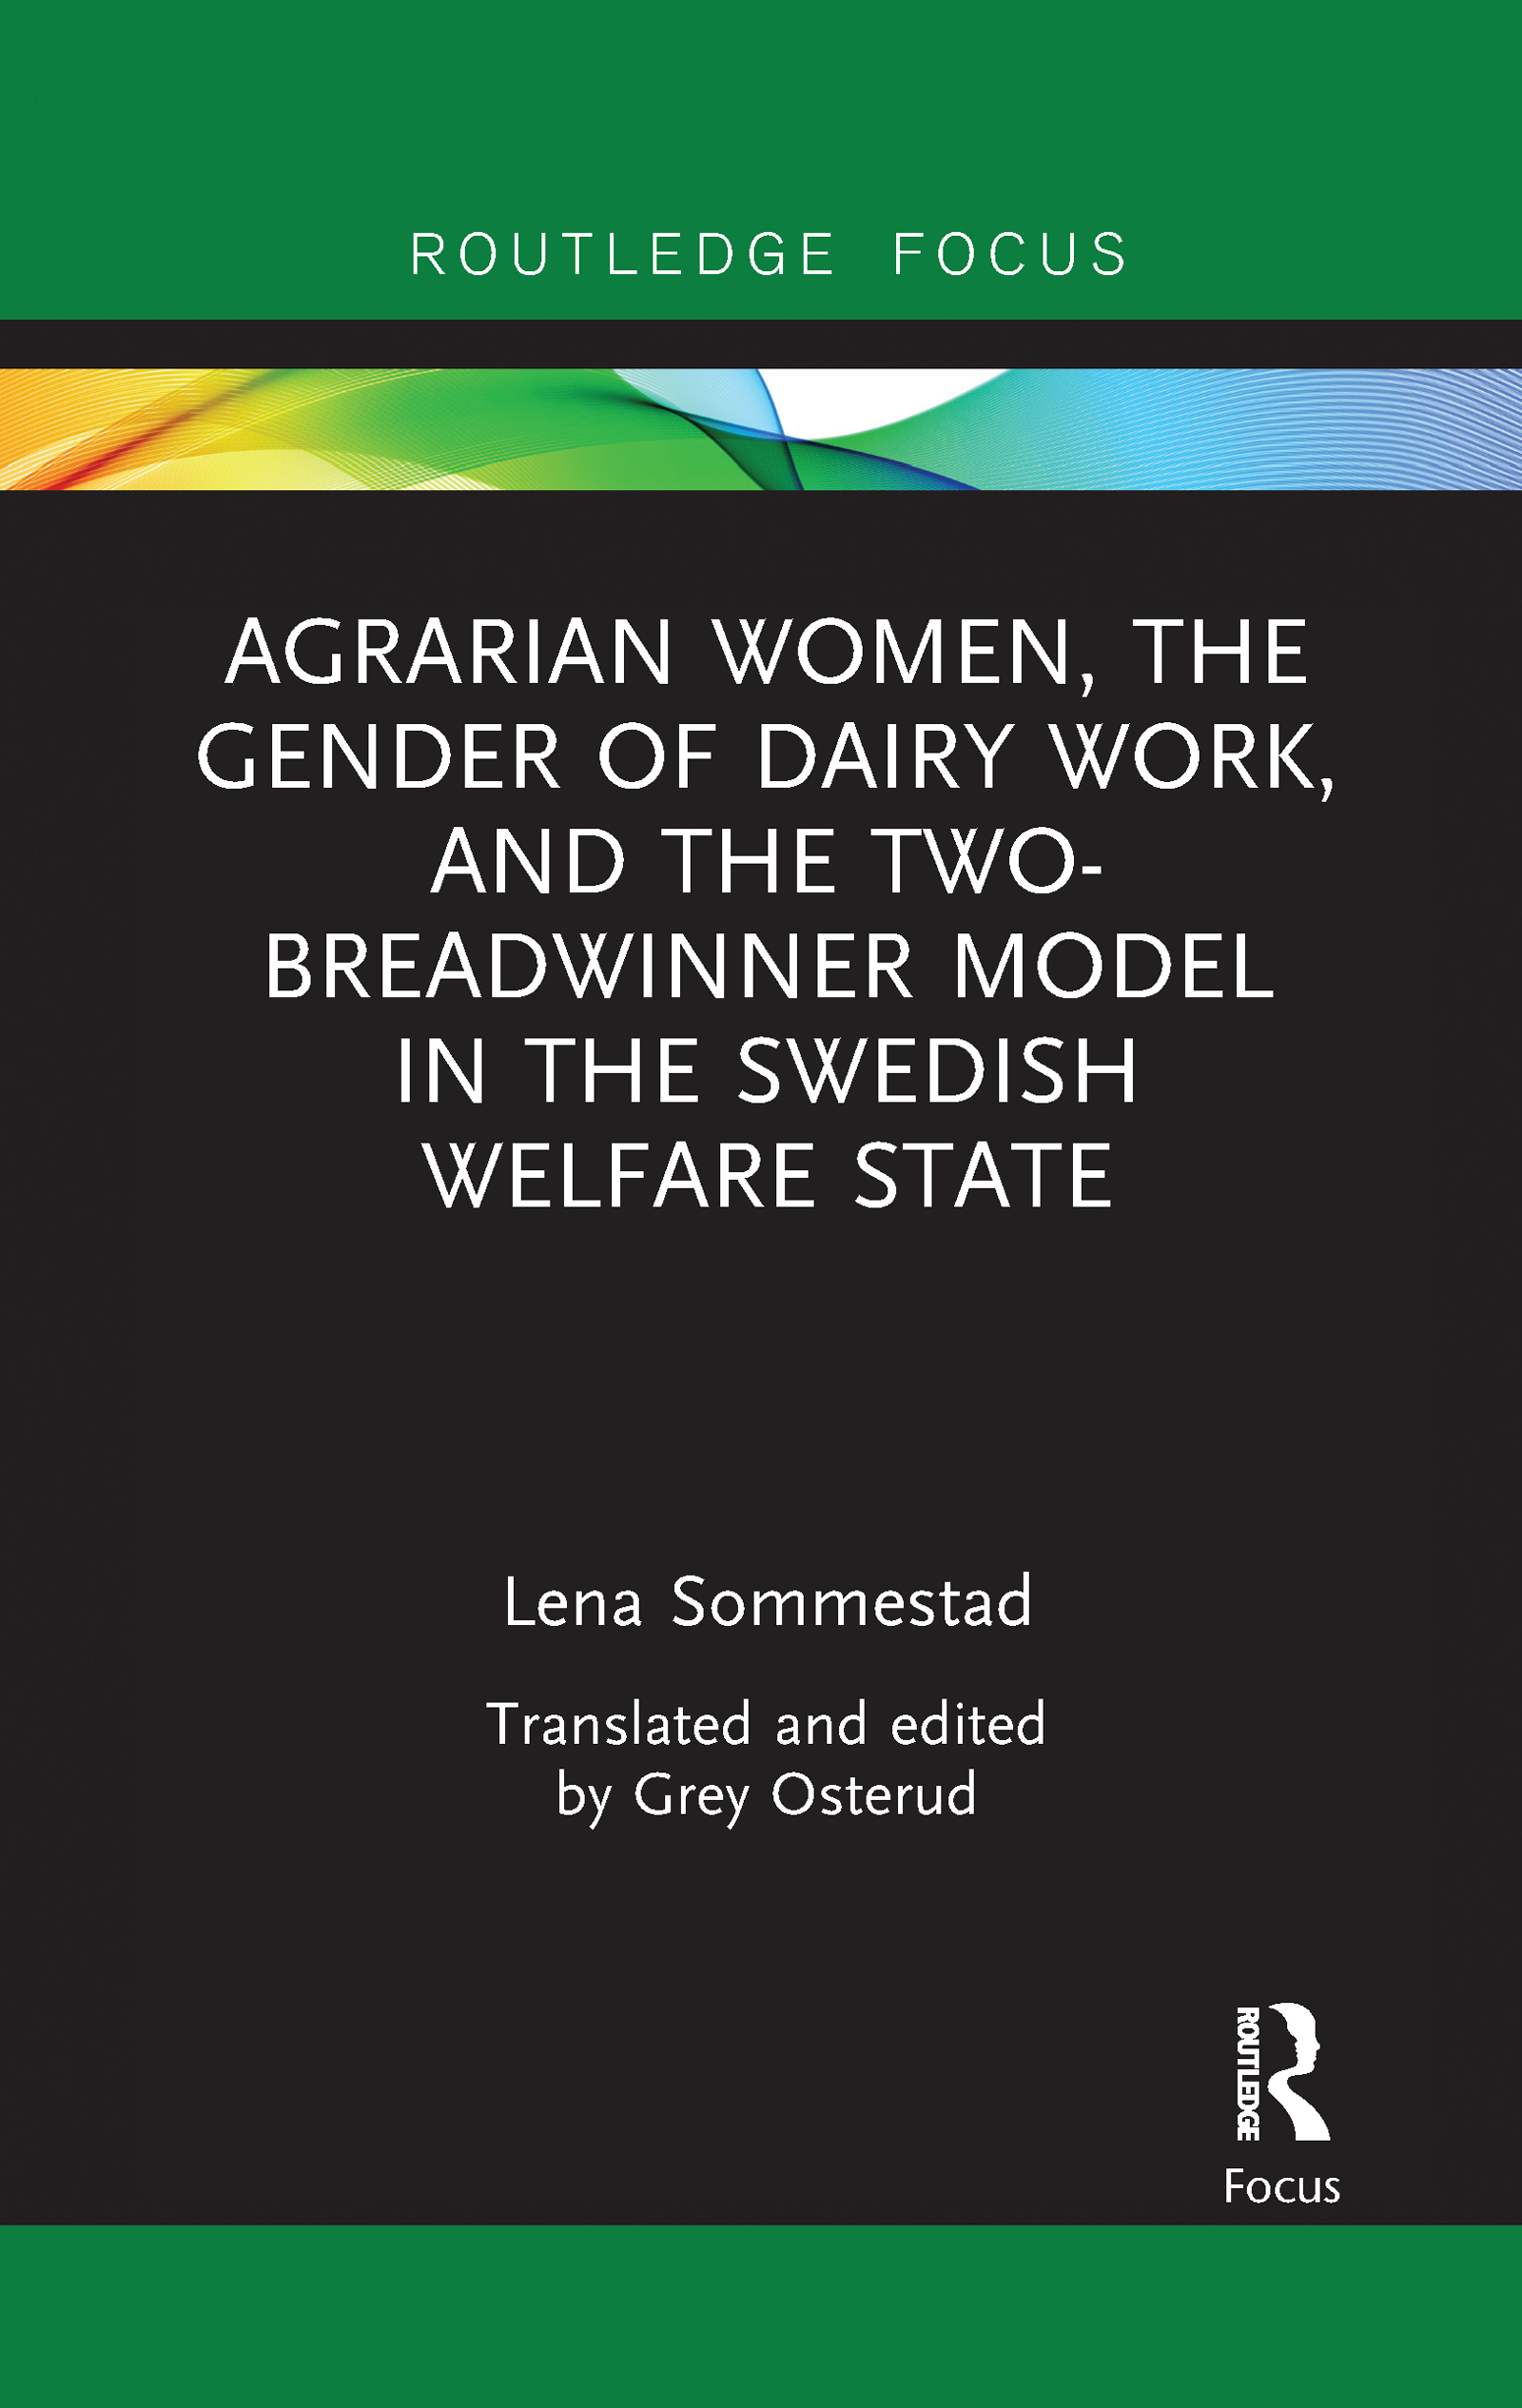 Agrarian Women, the Gender of Dairy Work, and the Two-Breadwinner Model in the Swedish Welfare State